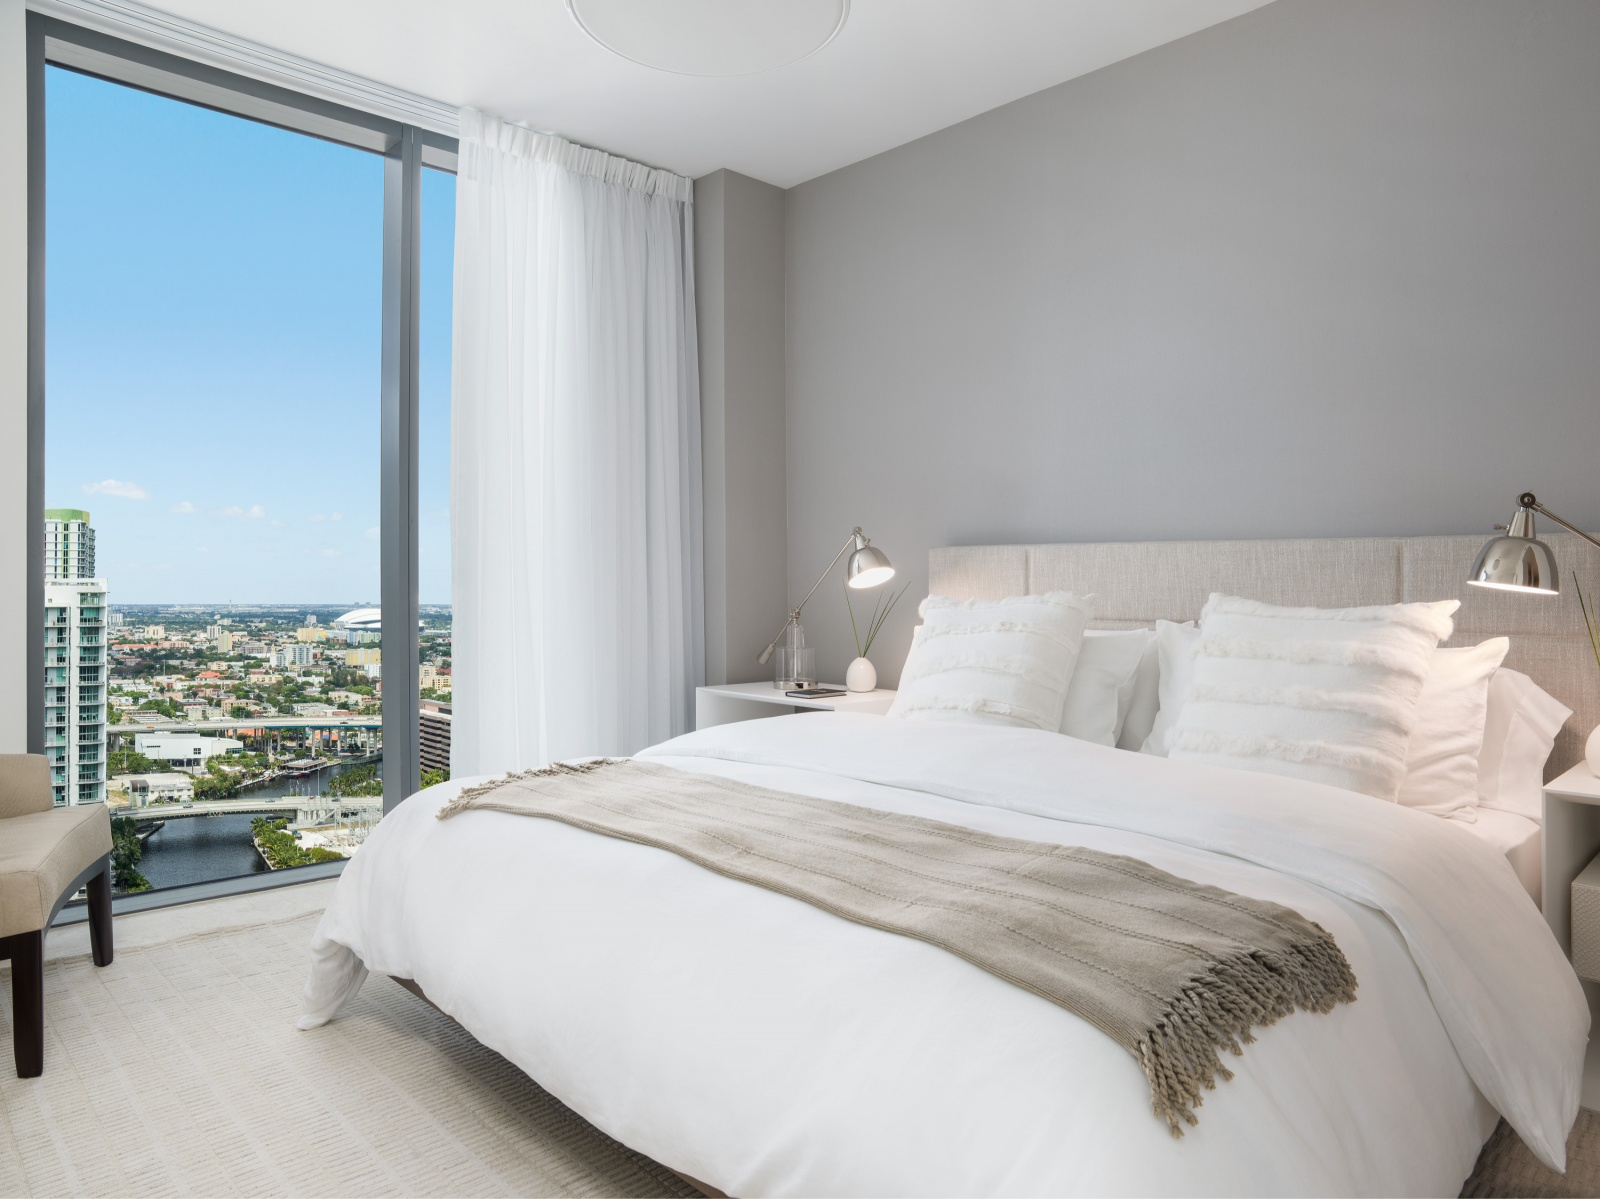 Reach Brickell city centre condo line 04 Bedroom pictures miami real estate investments